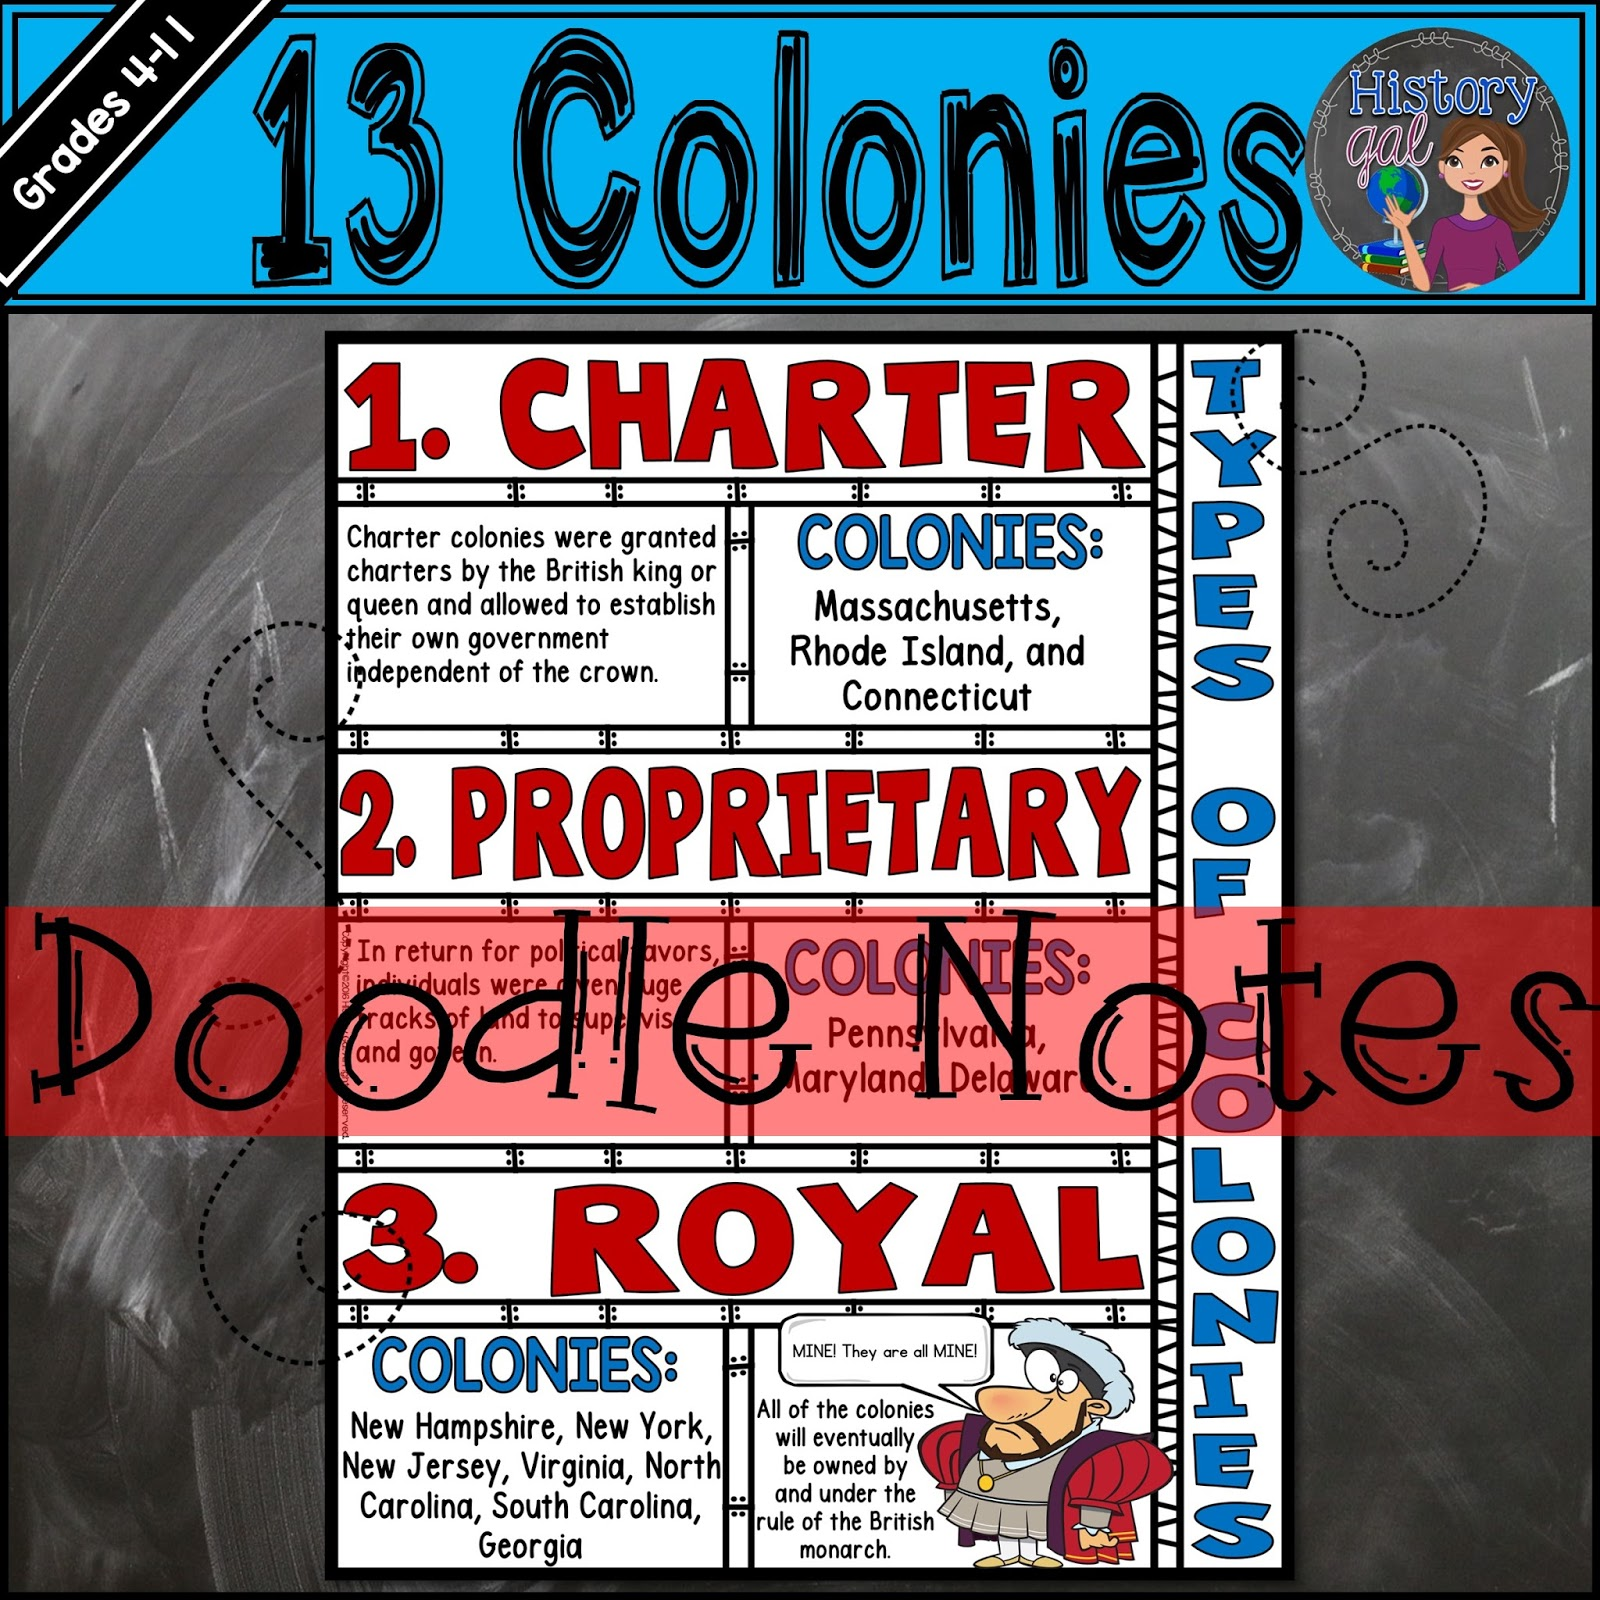 Students review Royal, Proprietary, and Charter Colonies with doodle notes